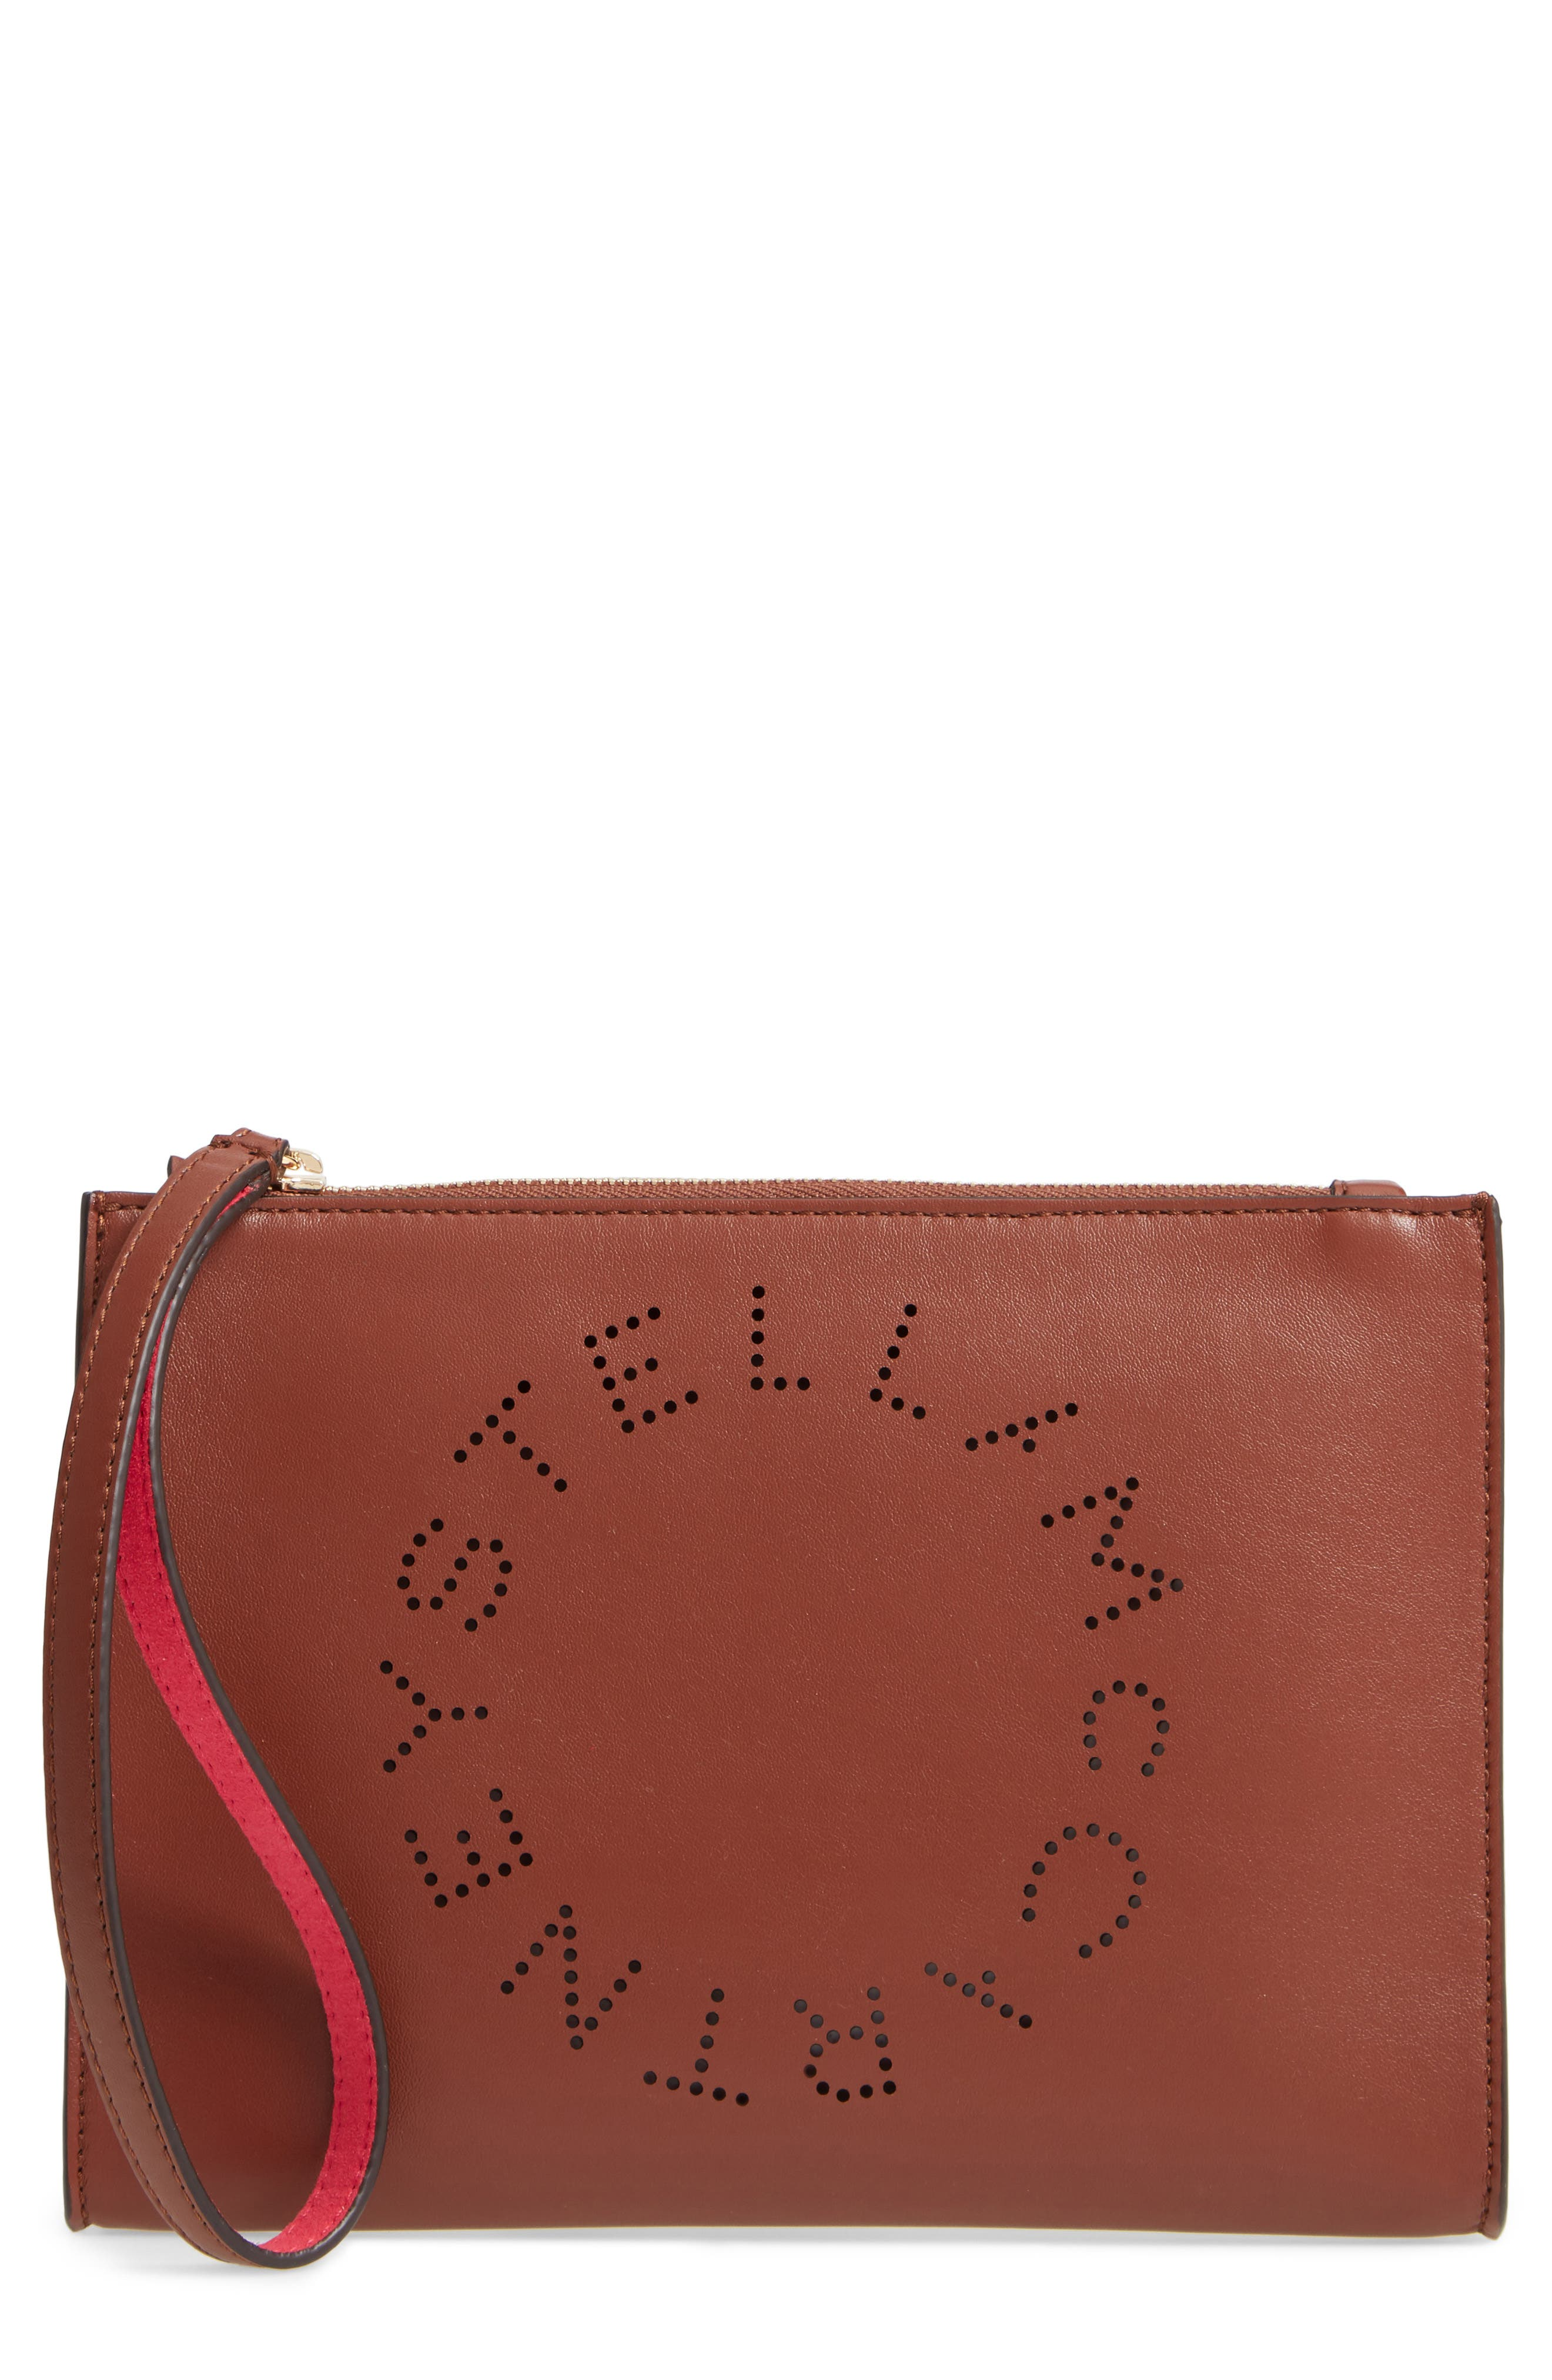 Stella Mccartney Alter Faux Nappa Leather Wristlet Clutch - Brown